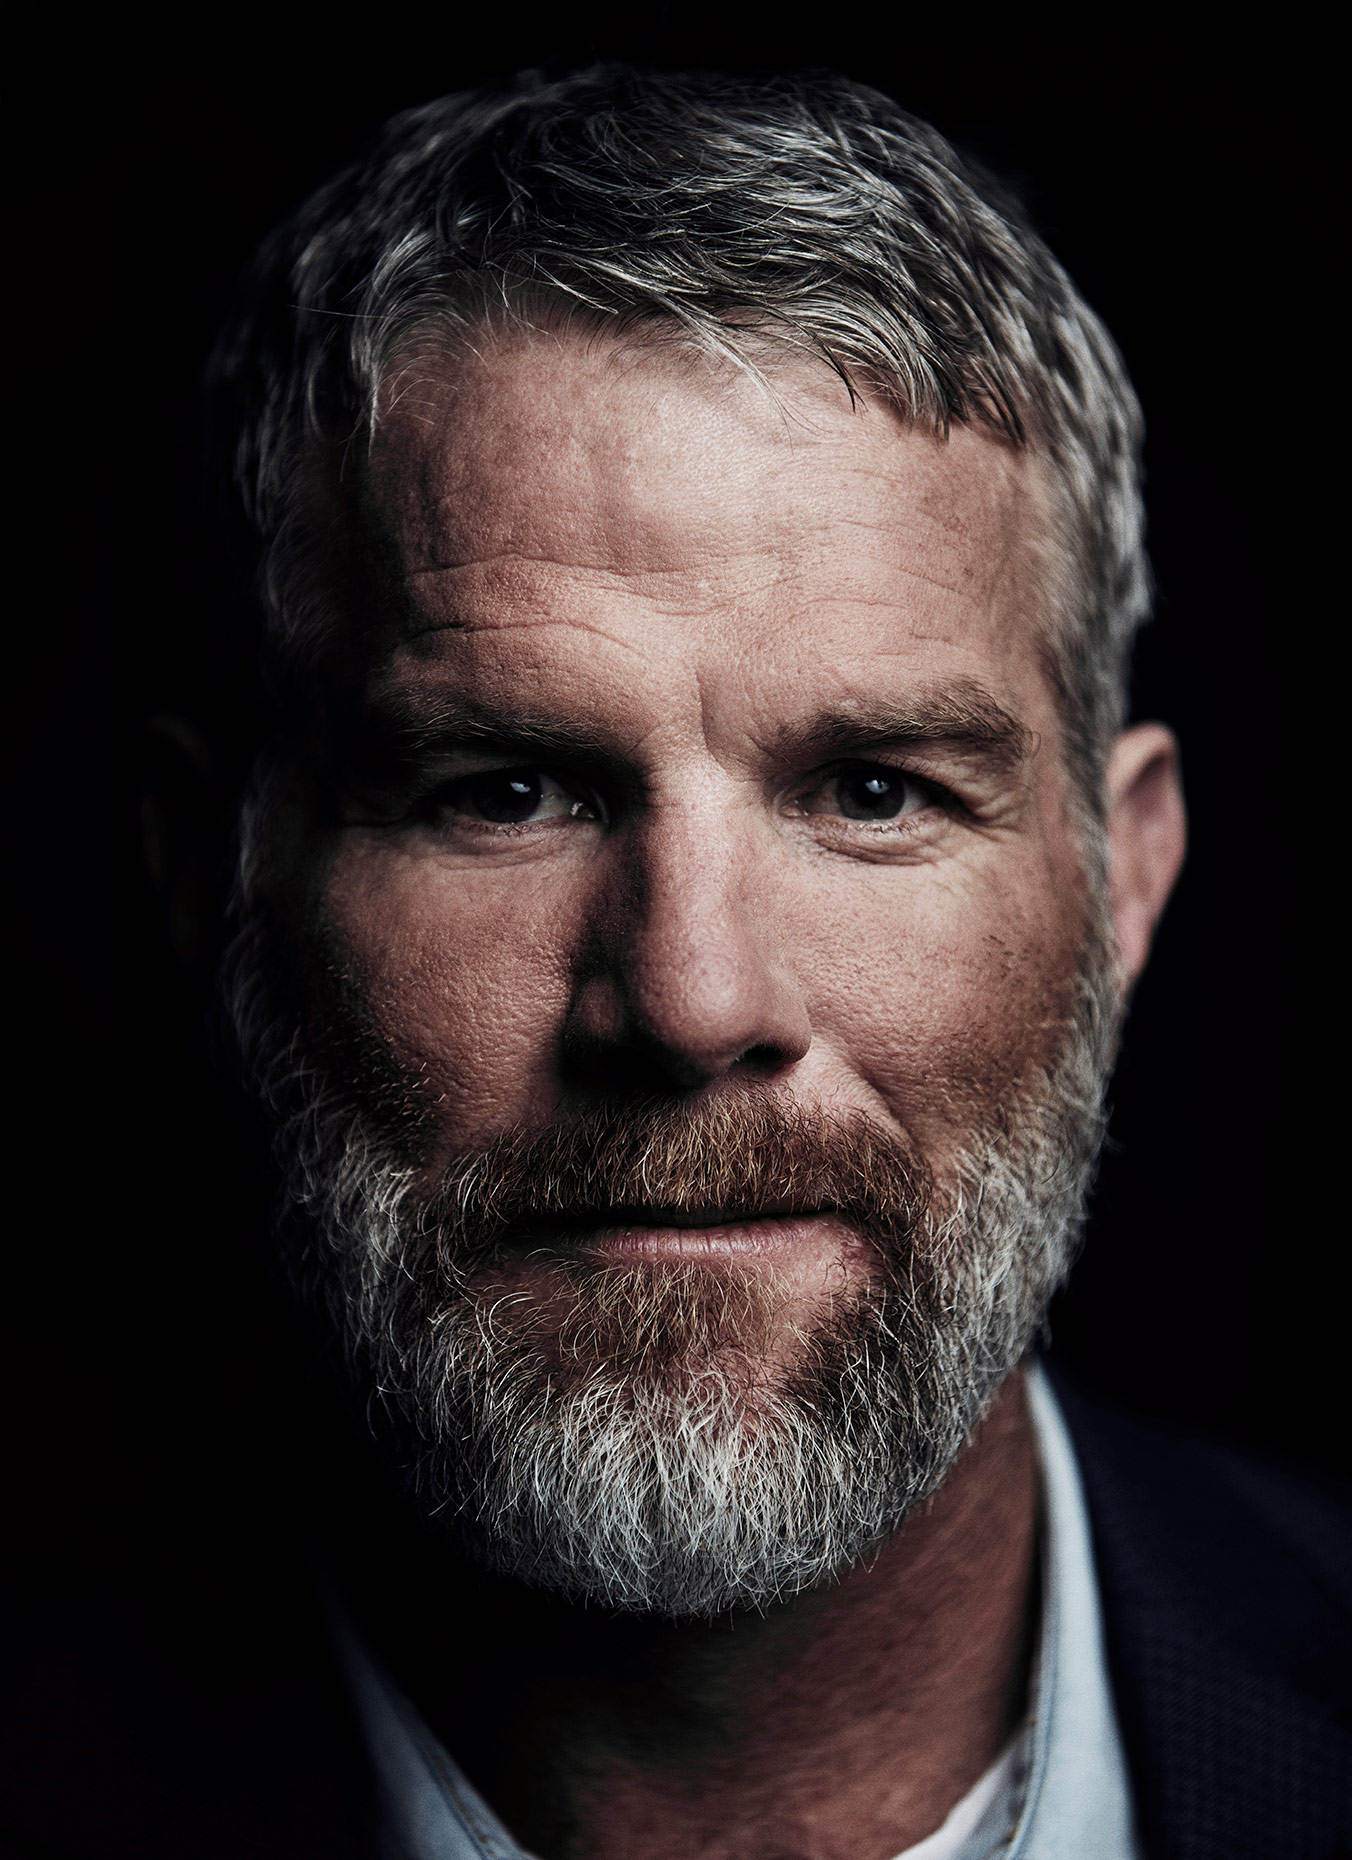 09-Brett-Favre_Joe-Buck_0989